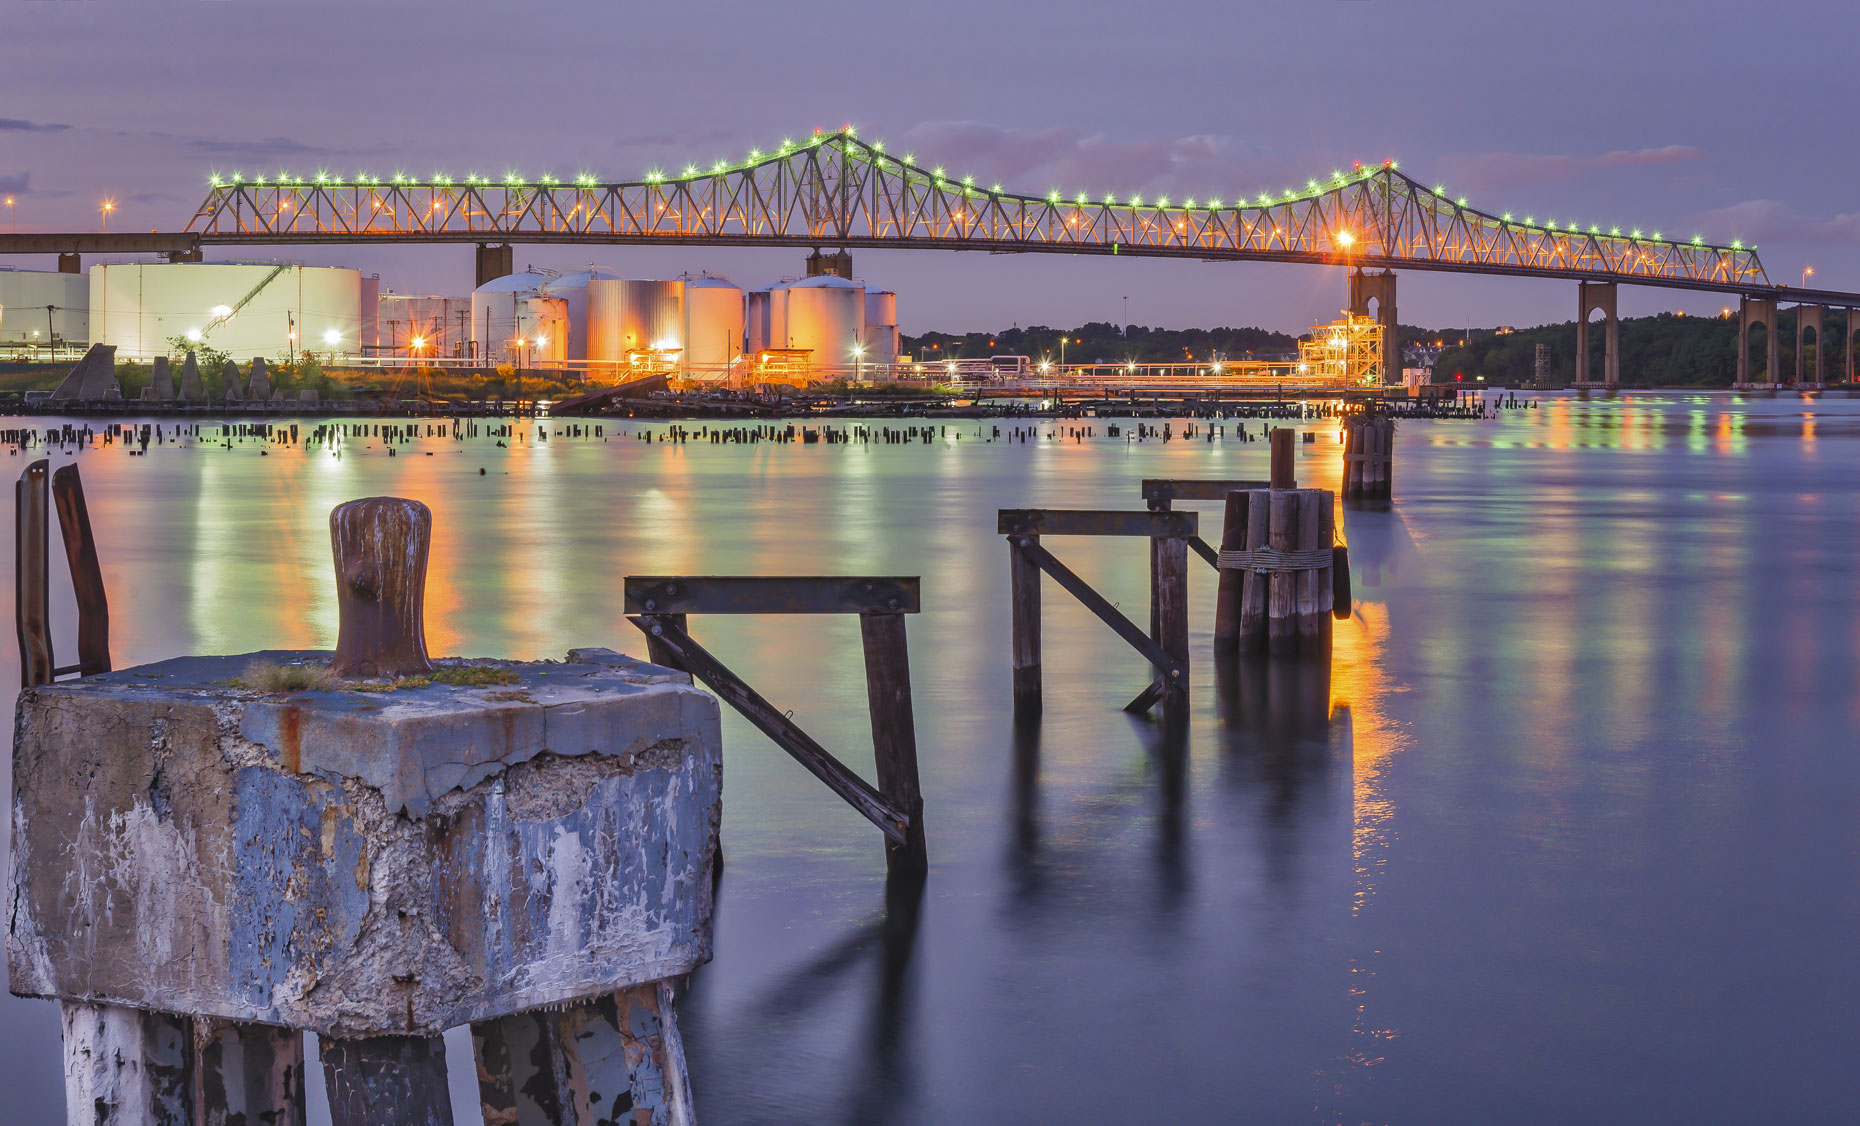 22-OuterBridge-from-Perth-Amboy